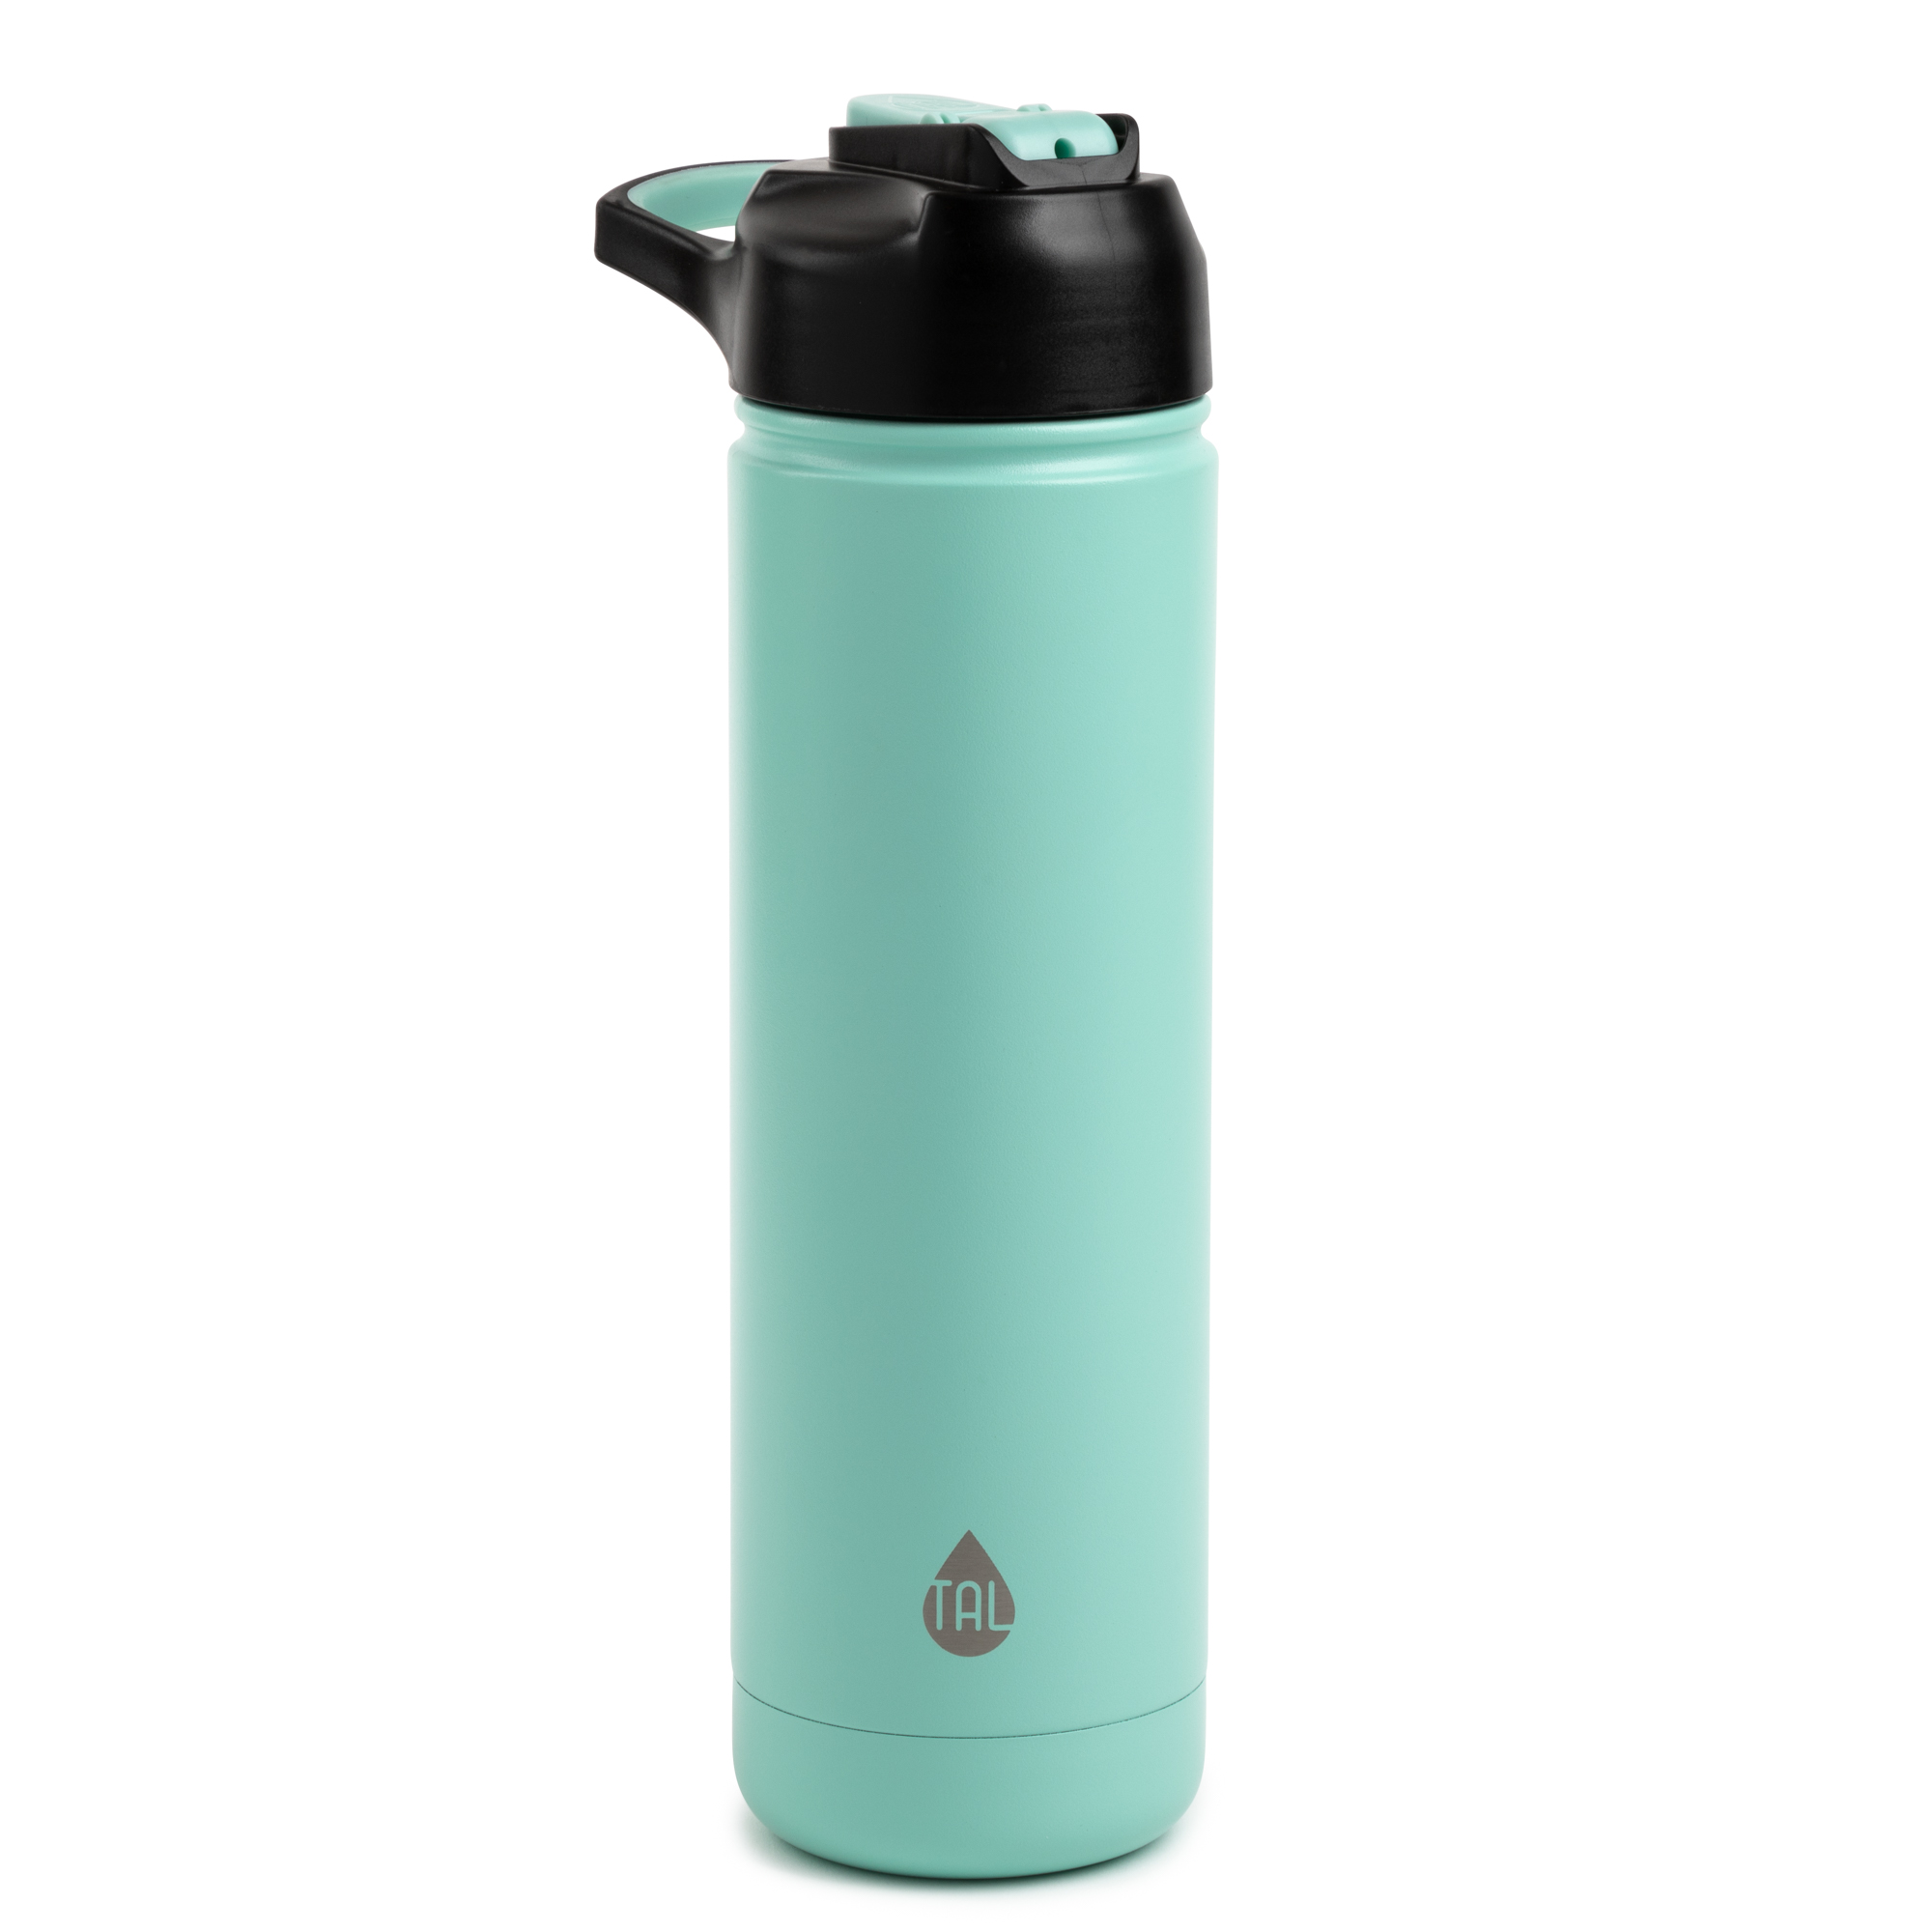 Tal 26 Ounce Ranger Water Bottle with Straw, Mint